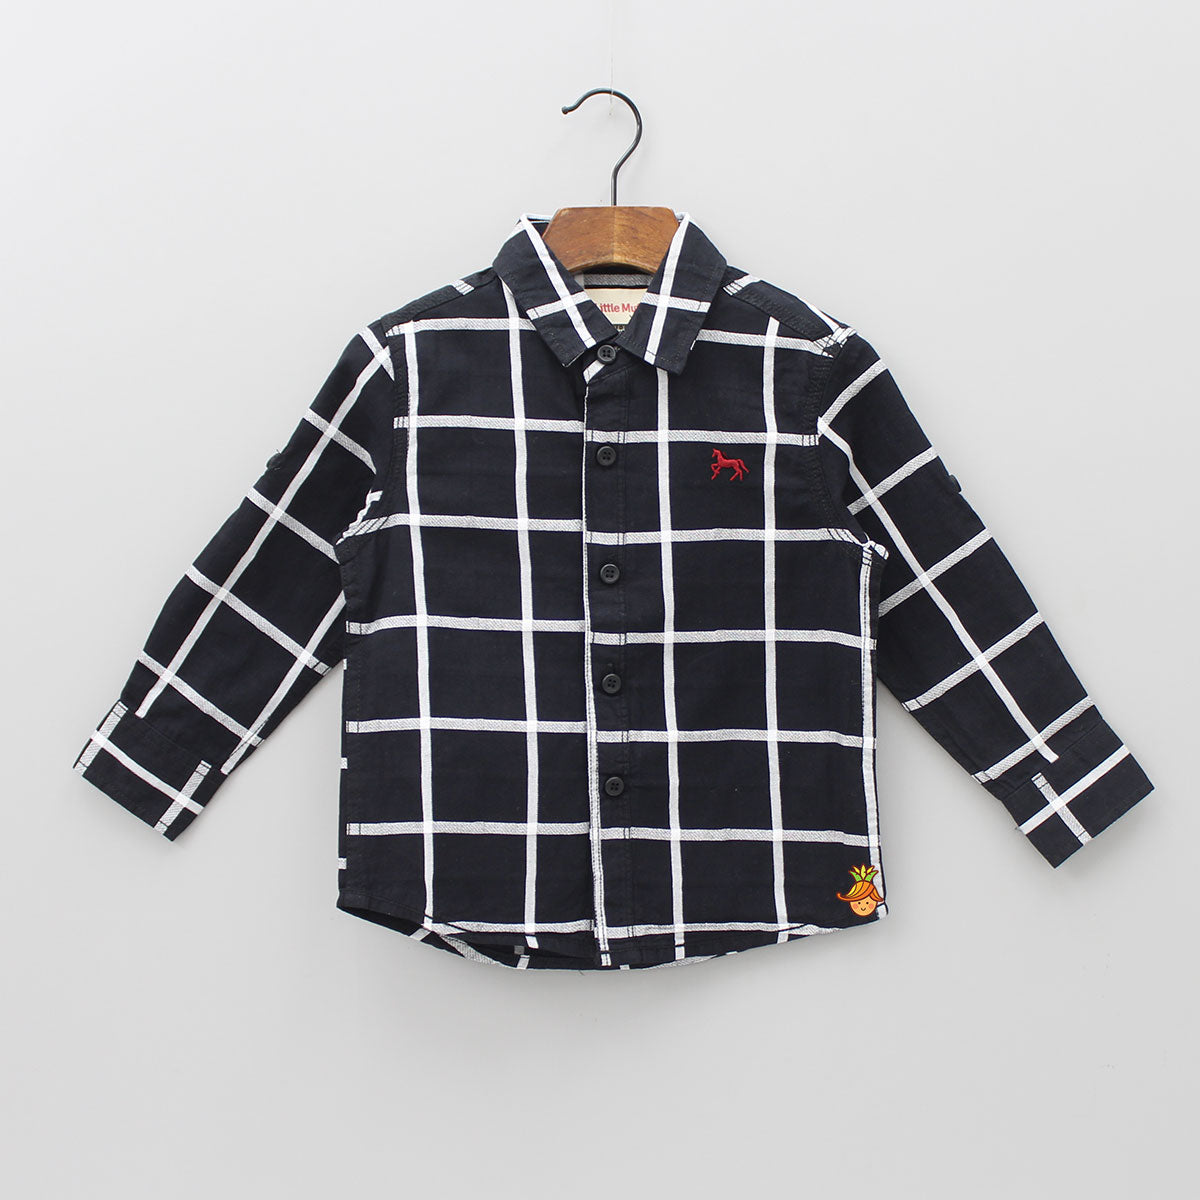 Black & Grey Checks Shirt